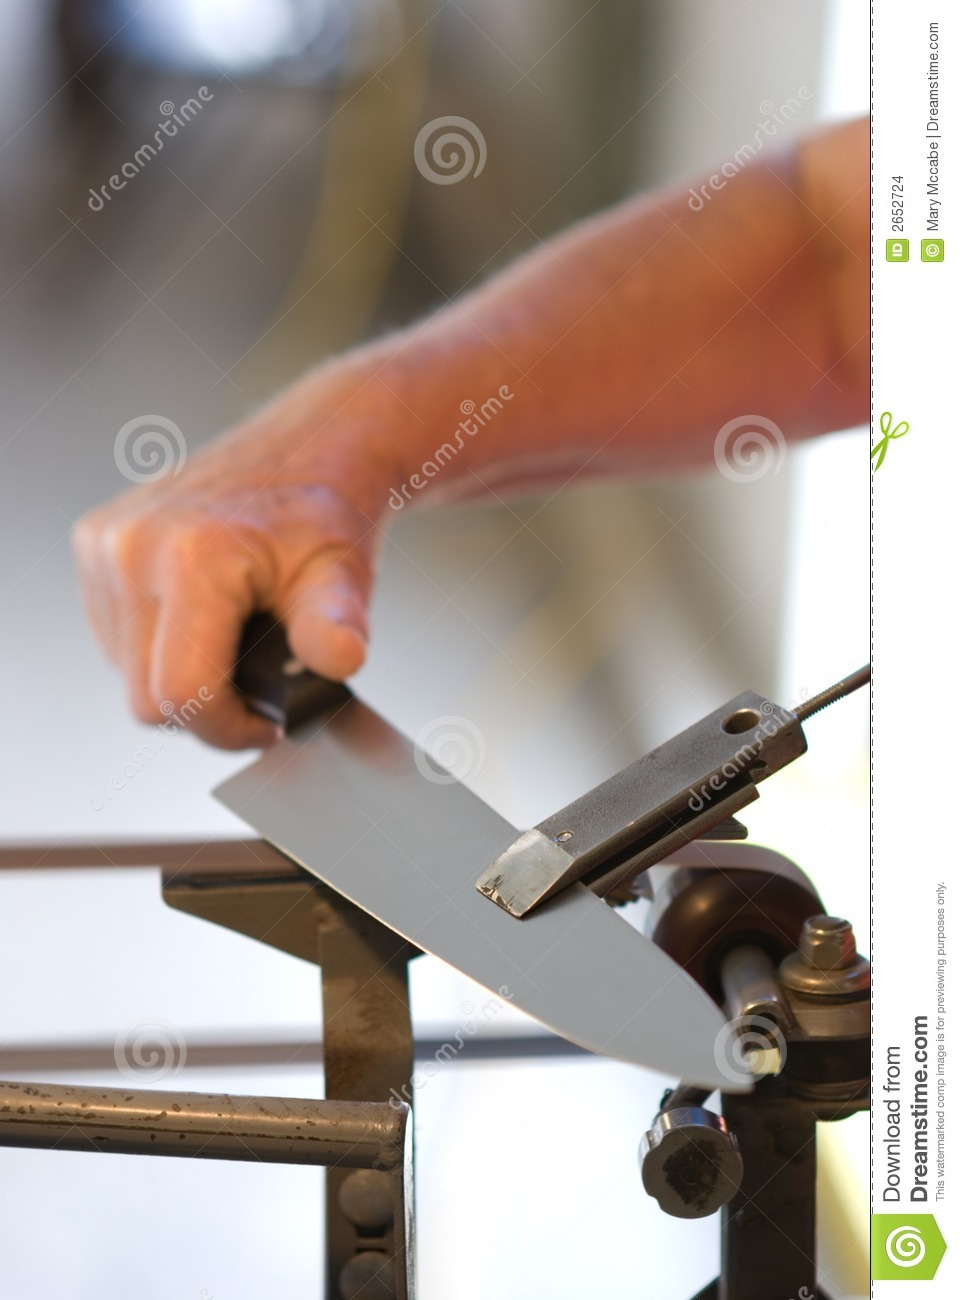 kitchen knife sharpening roll away island stock images - image: 2652724